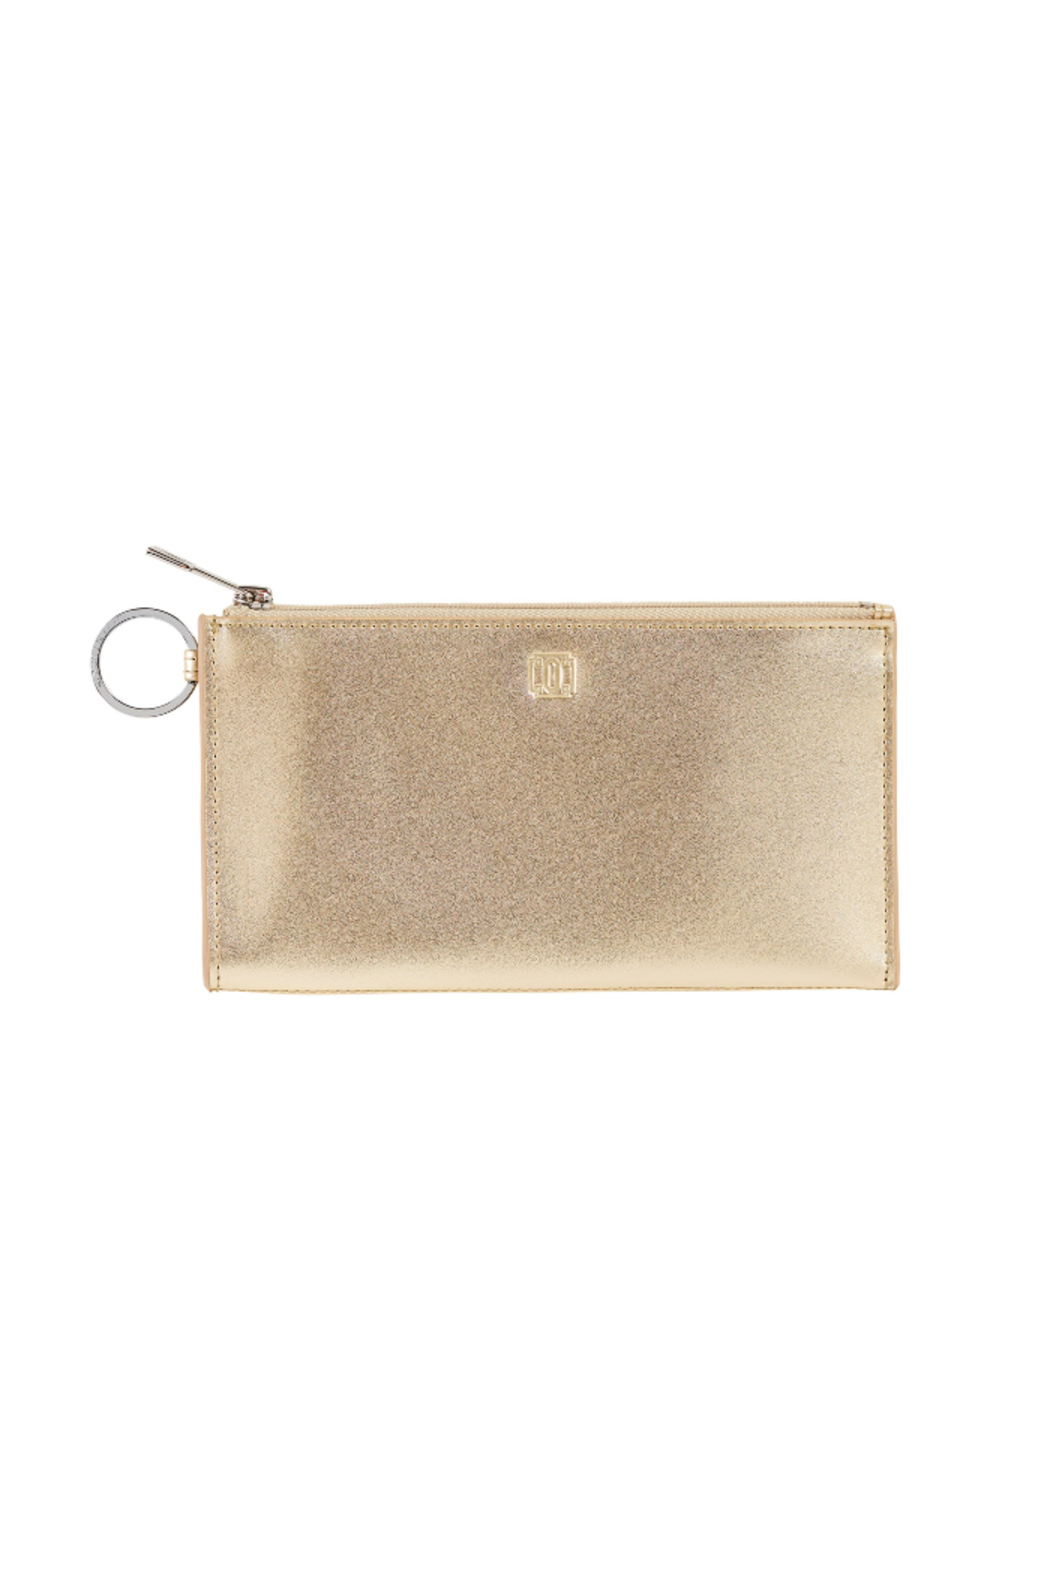 The Birds Nest GOLD RUSH-BIG OSSENTIAL WALLET - Main Image